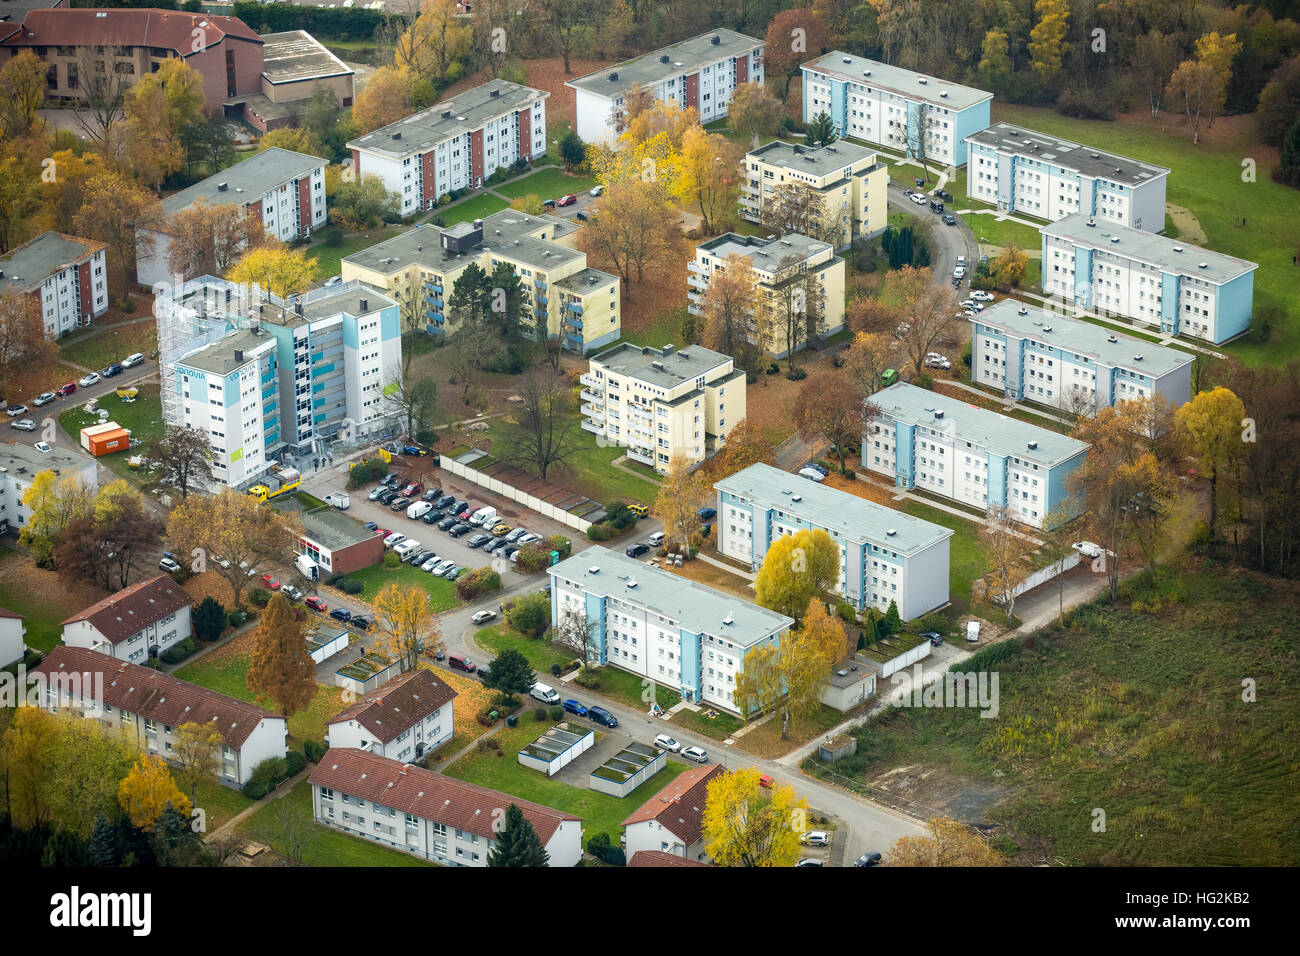 Aerial view, renovations VONOVIA skyscraper and settlement Narcissus Road, social housing, rental housing, Bochum, Stock Photo